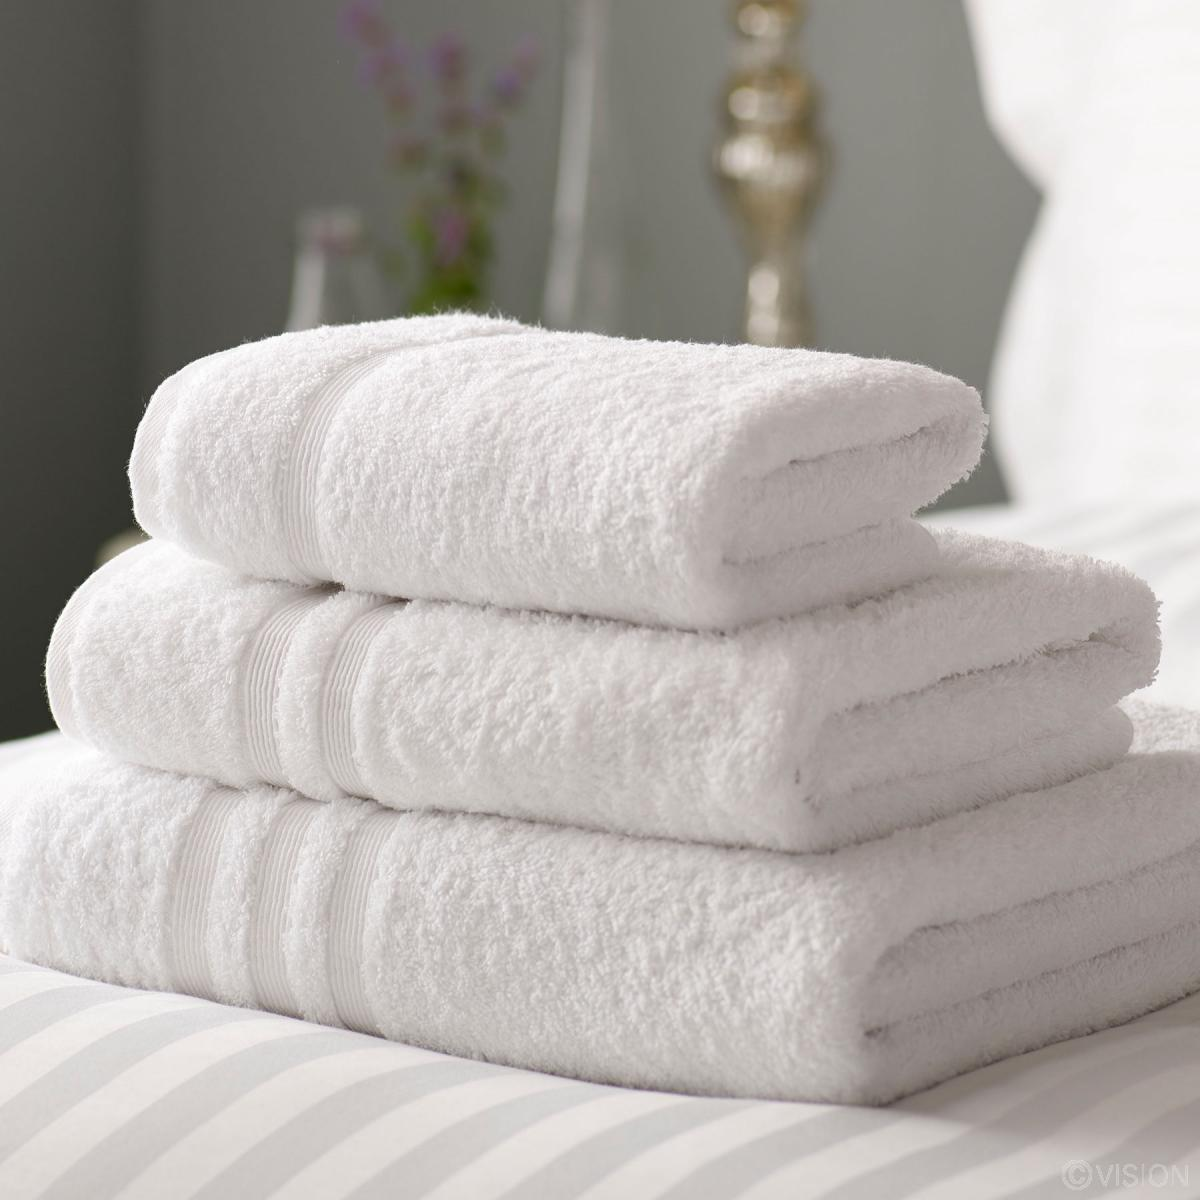 Buy Turkish Hand Towel: Buy Guest Hand Towels Made From Turkish Cotton